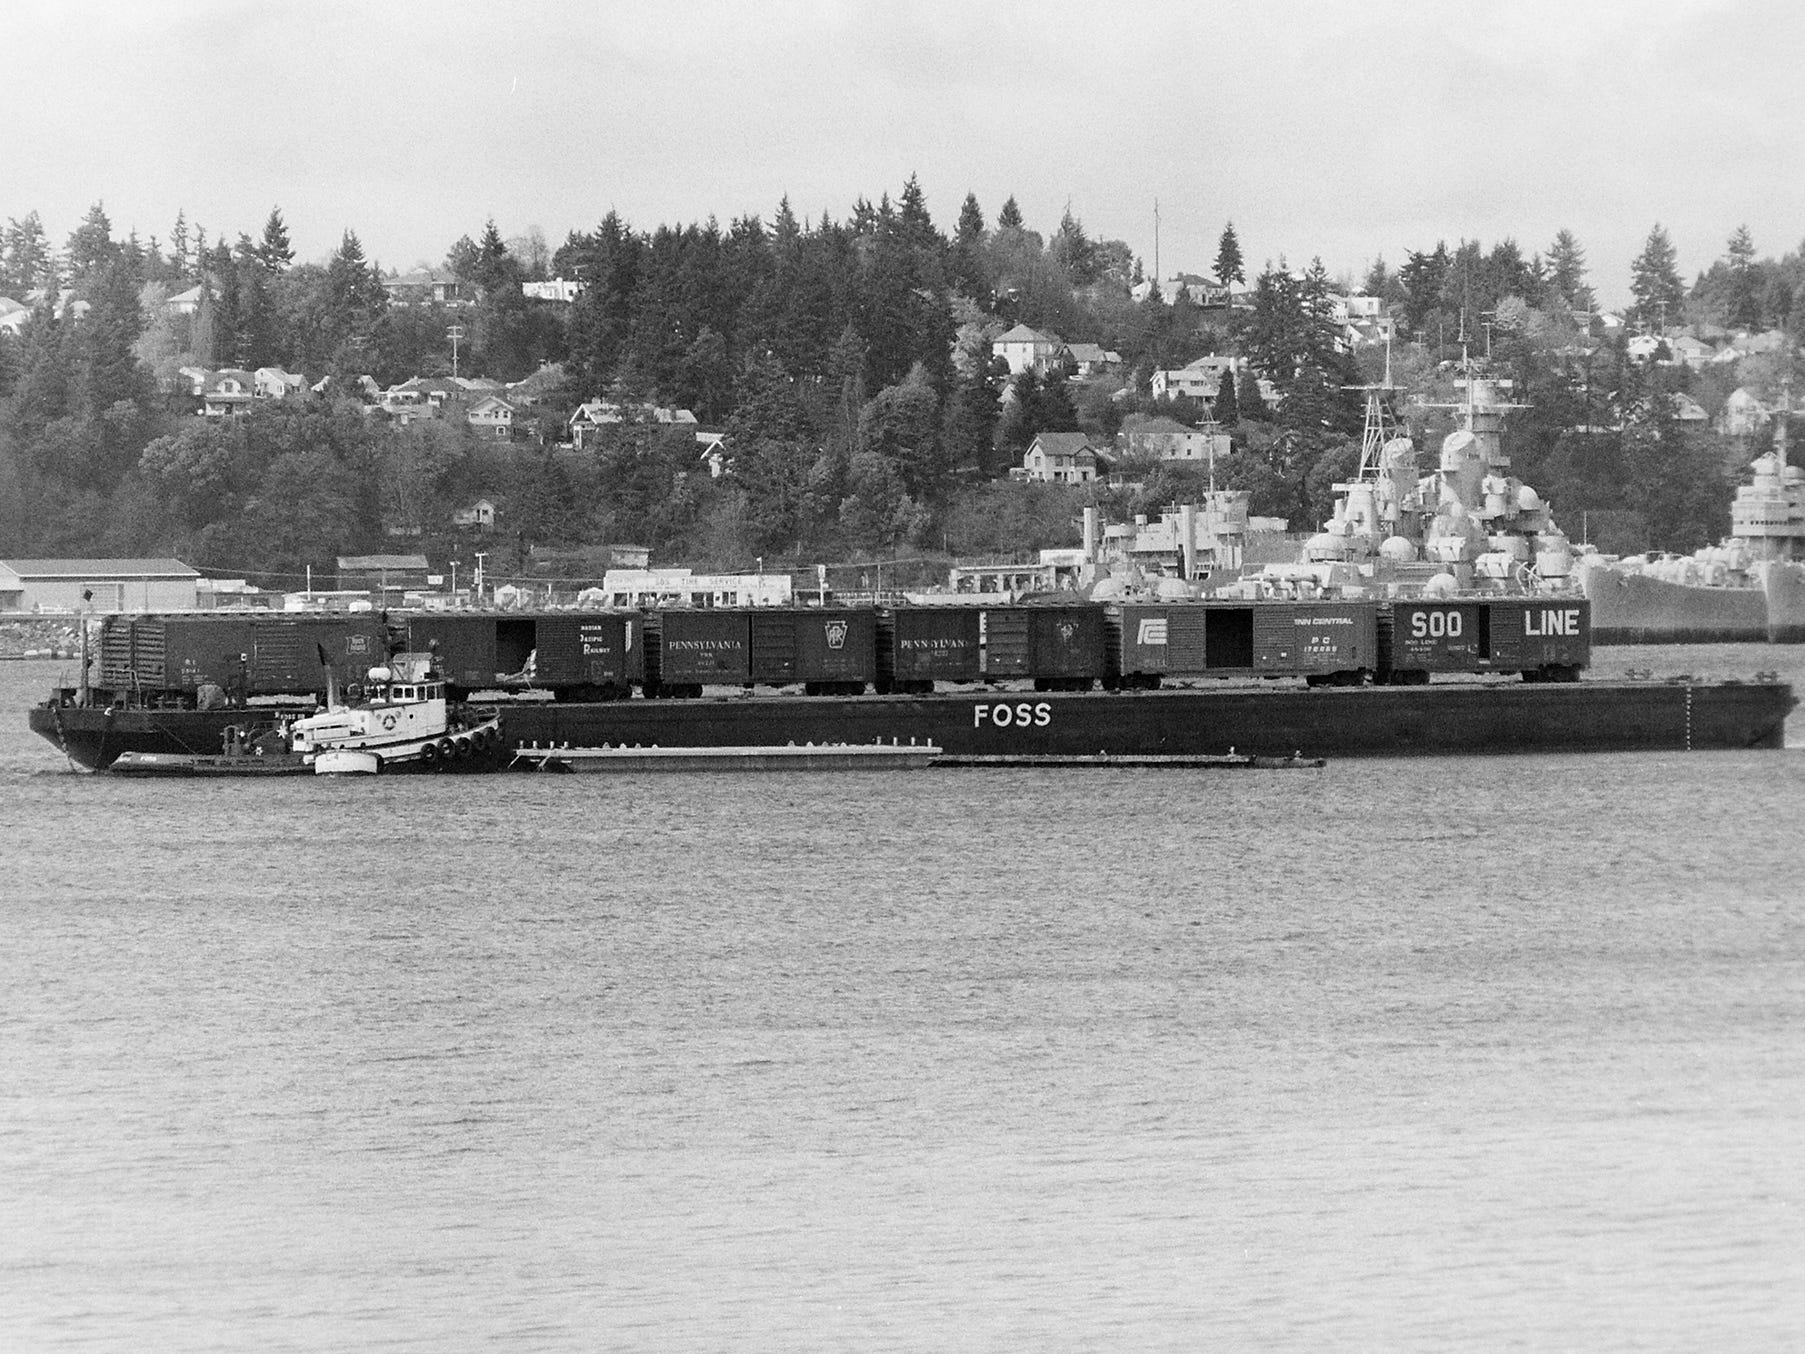 04/11/70